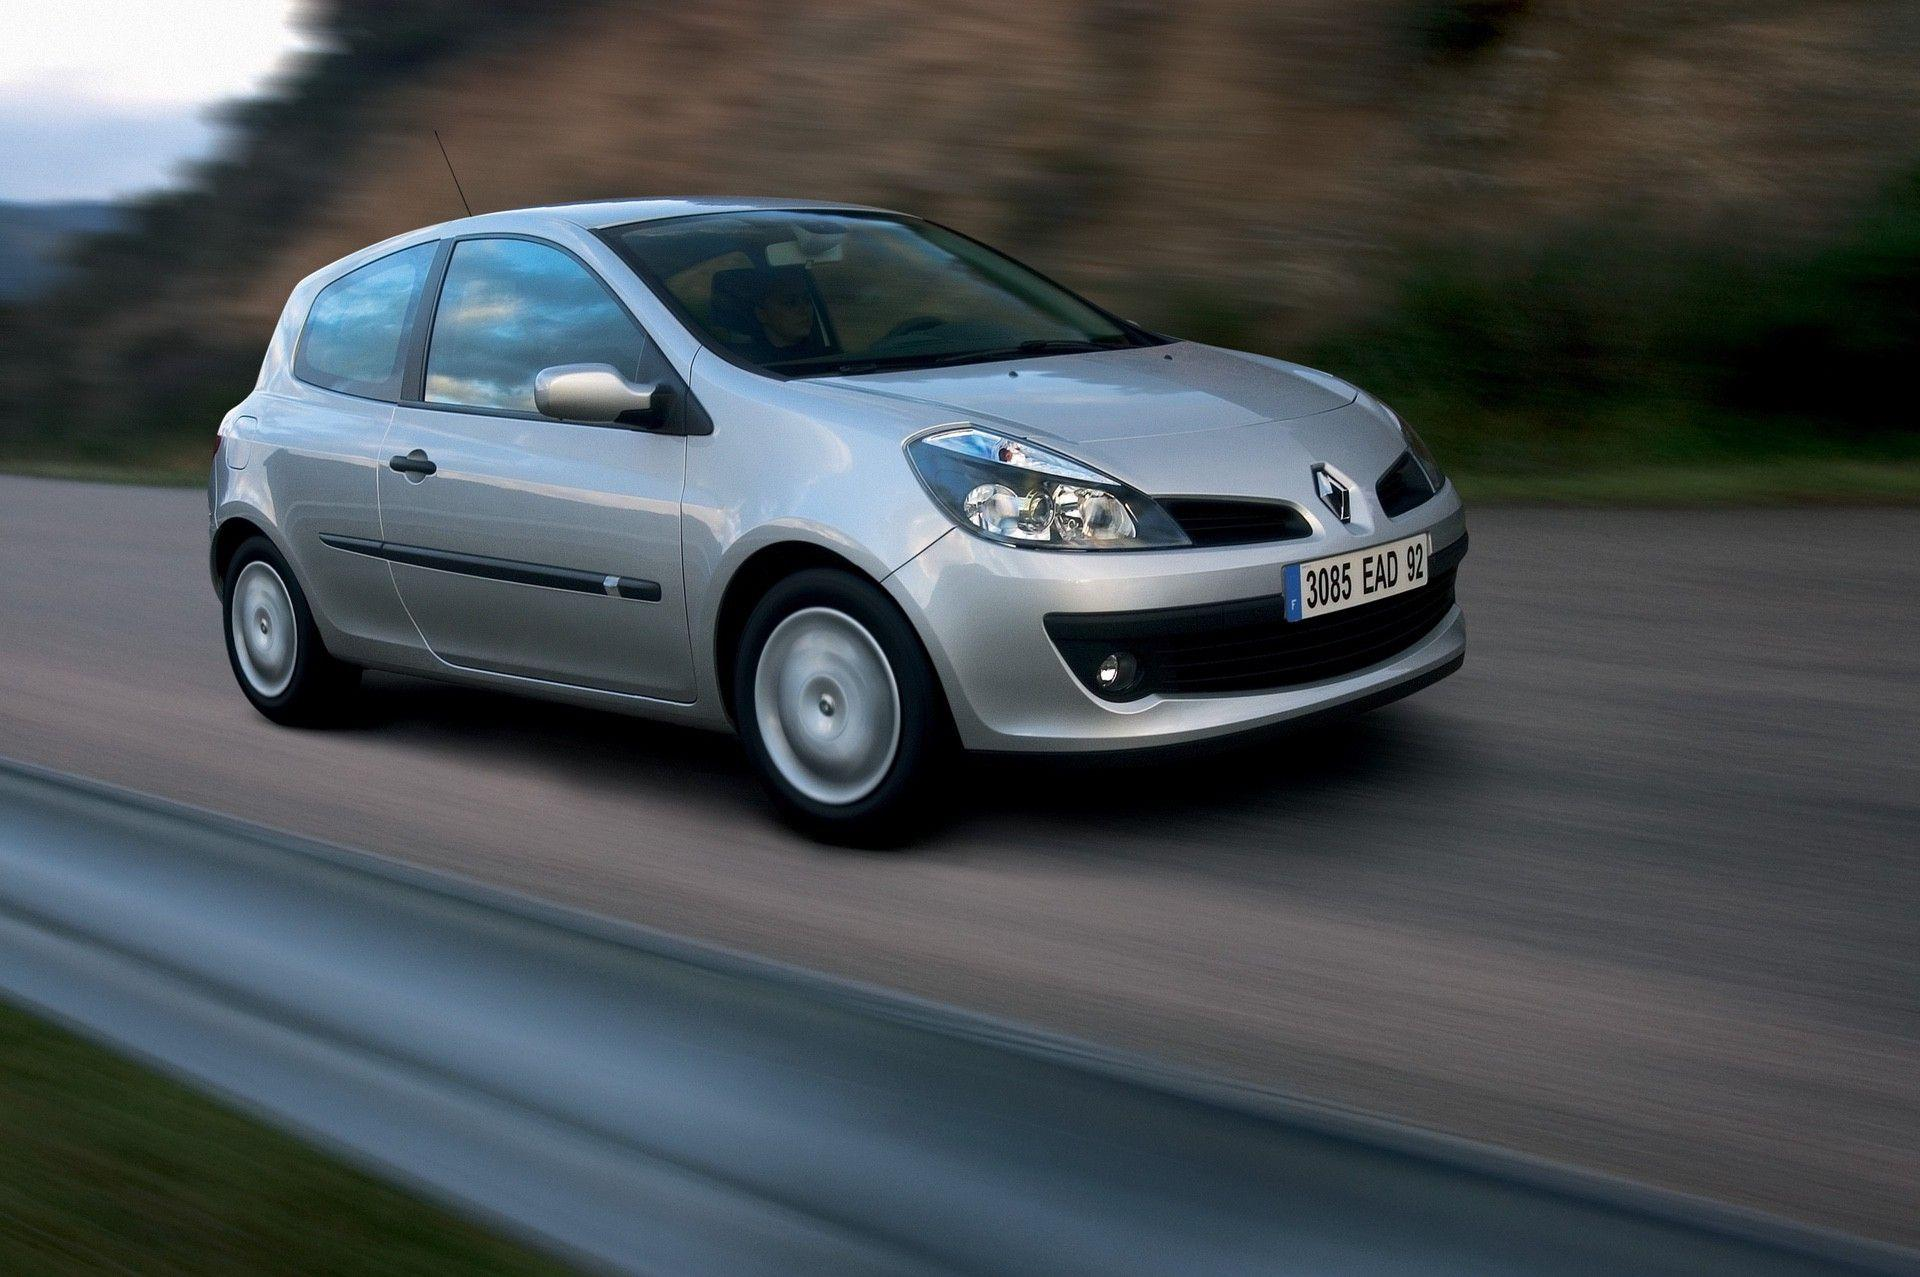 2020-30-years-of-Renault-CLIO-Renault-CLIO-III-2005-2012-3